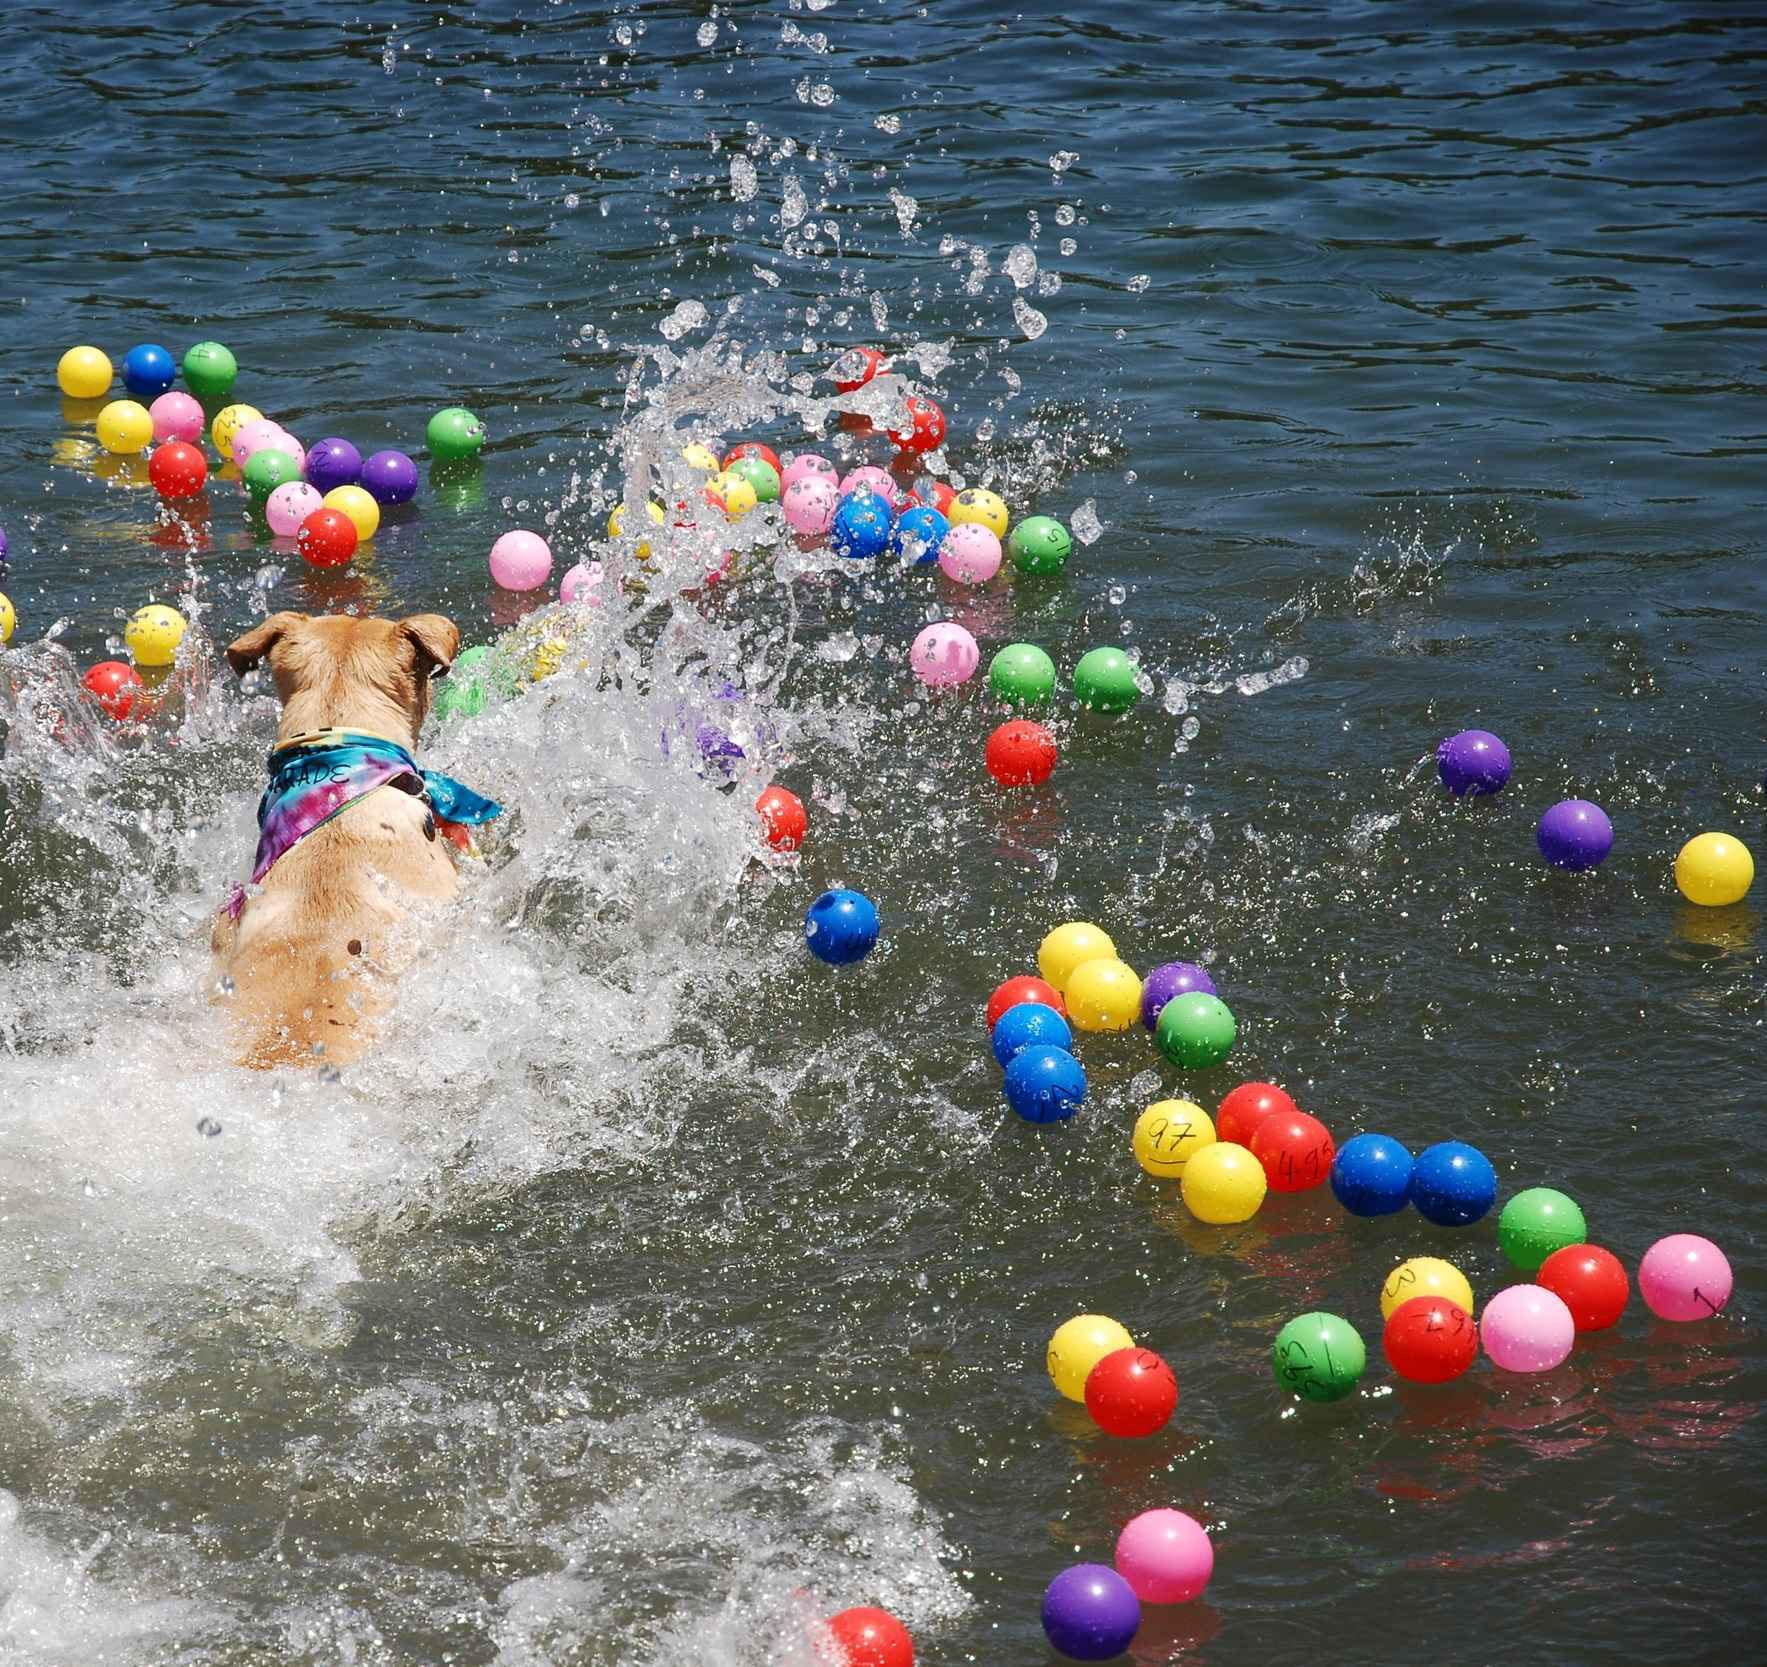 Last chance to get your Retriever's Balls! This site closes at 8pm 6/21!  image